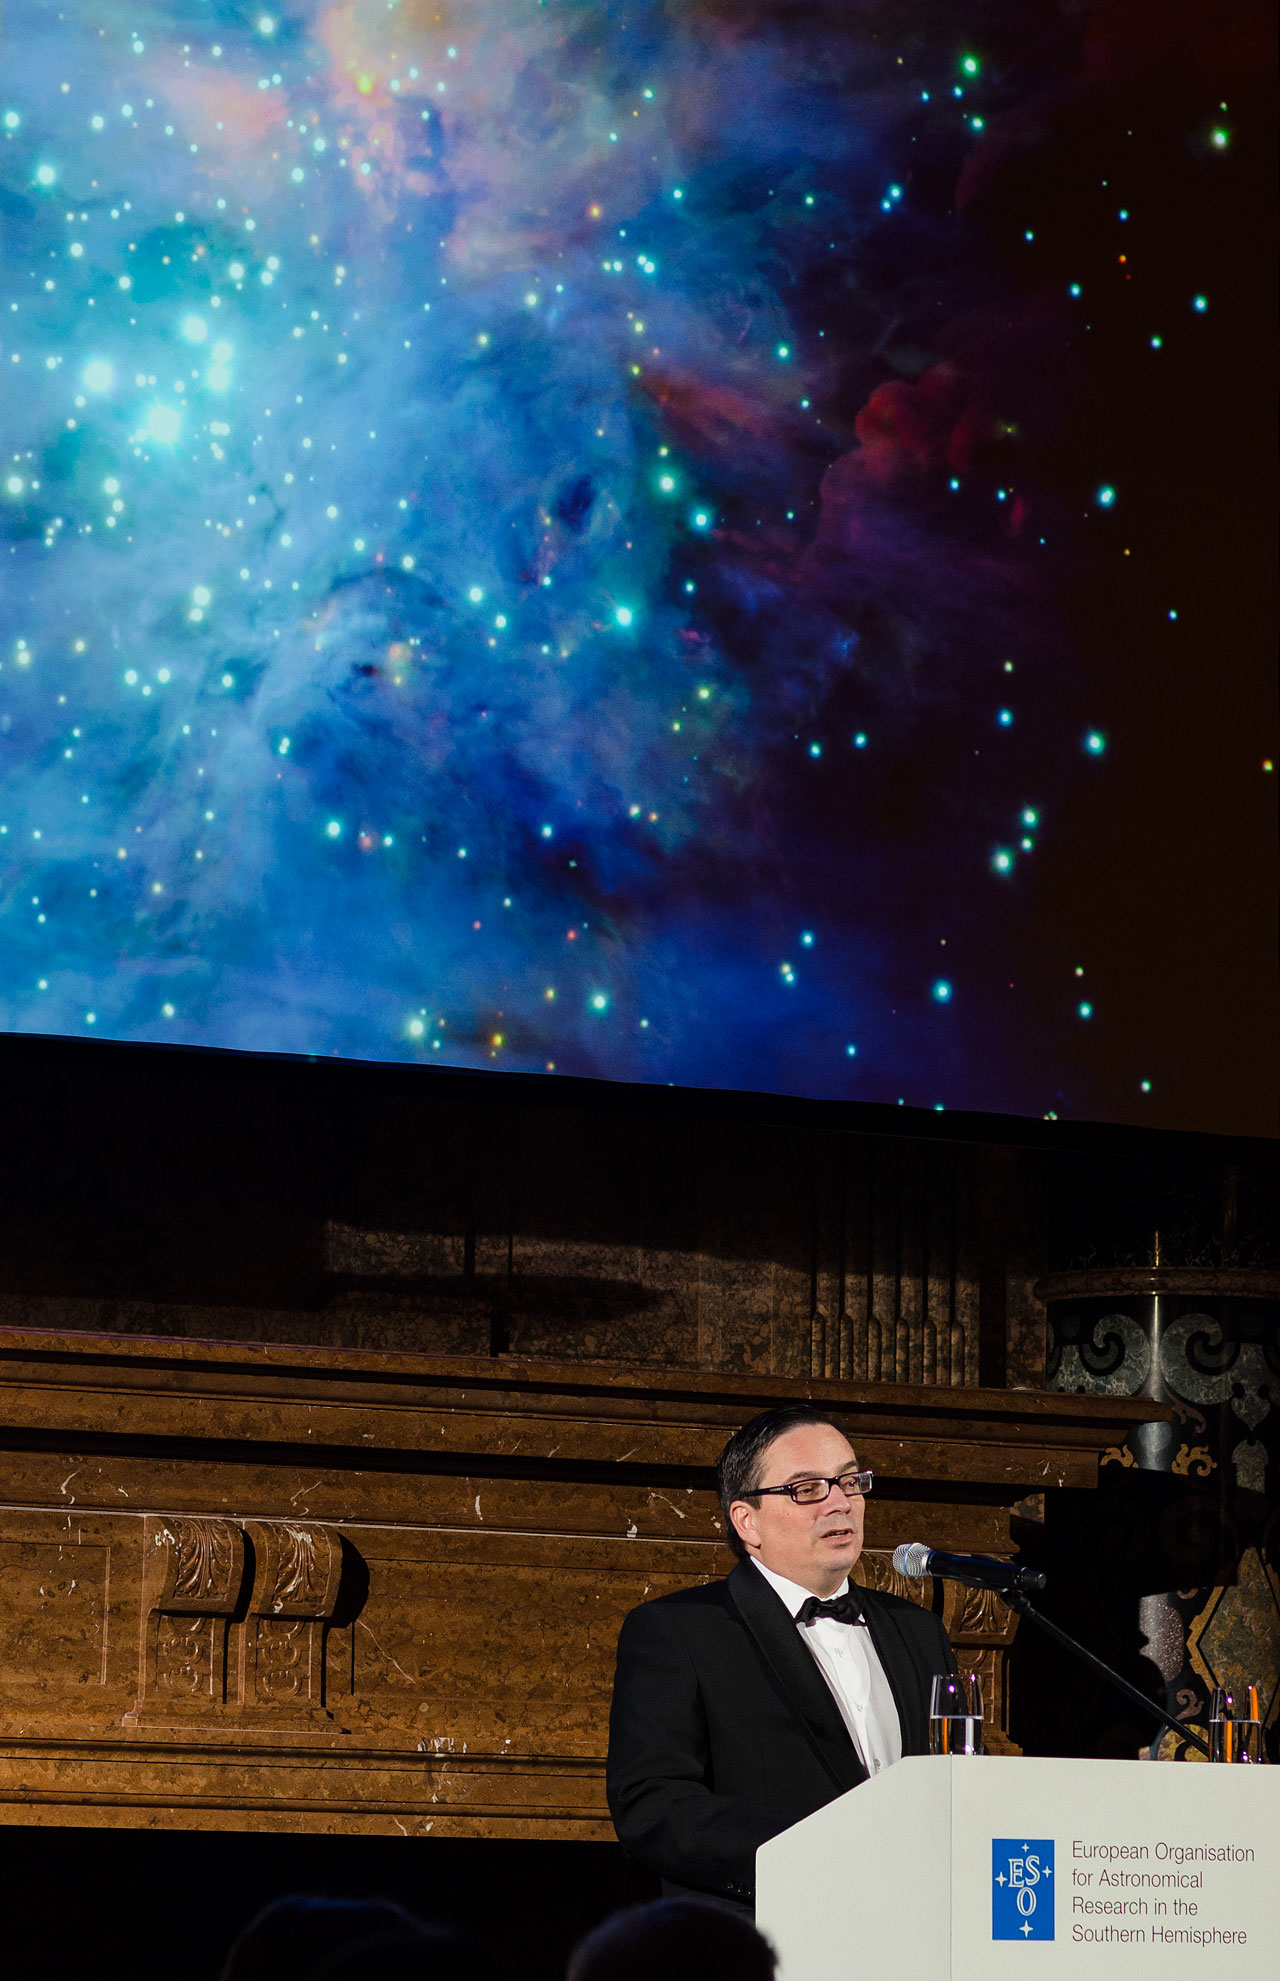 Xavier Barcons and the Orion Nebula at the ESO 50th Anniversary Gala Event